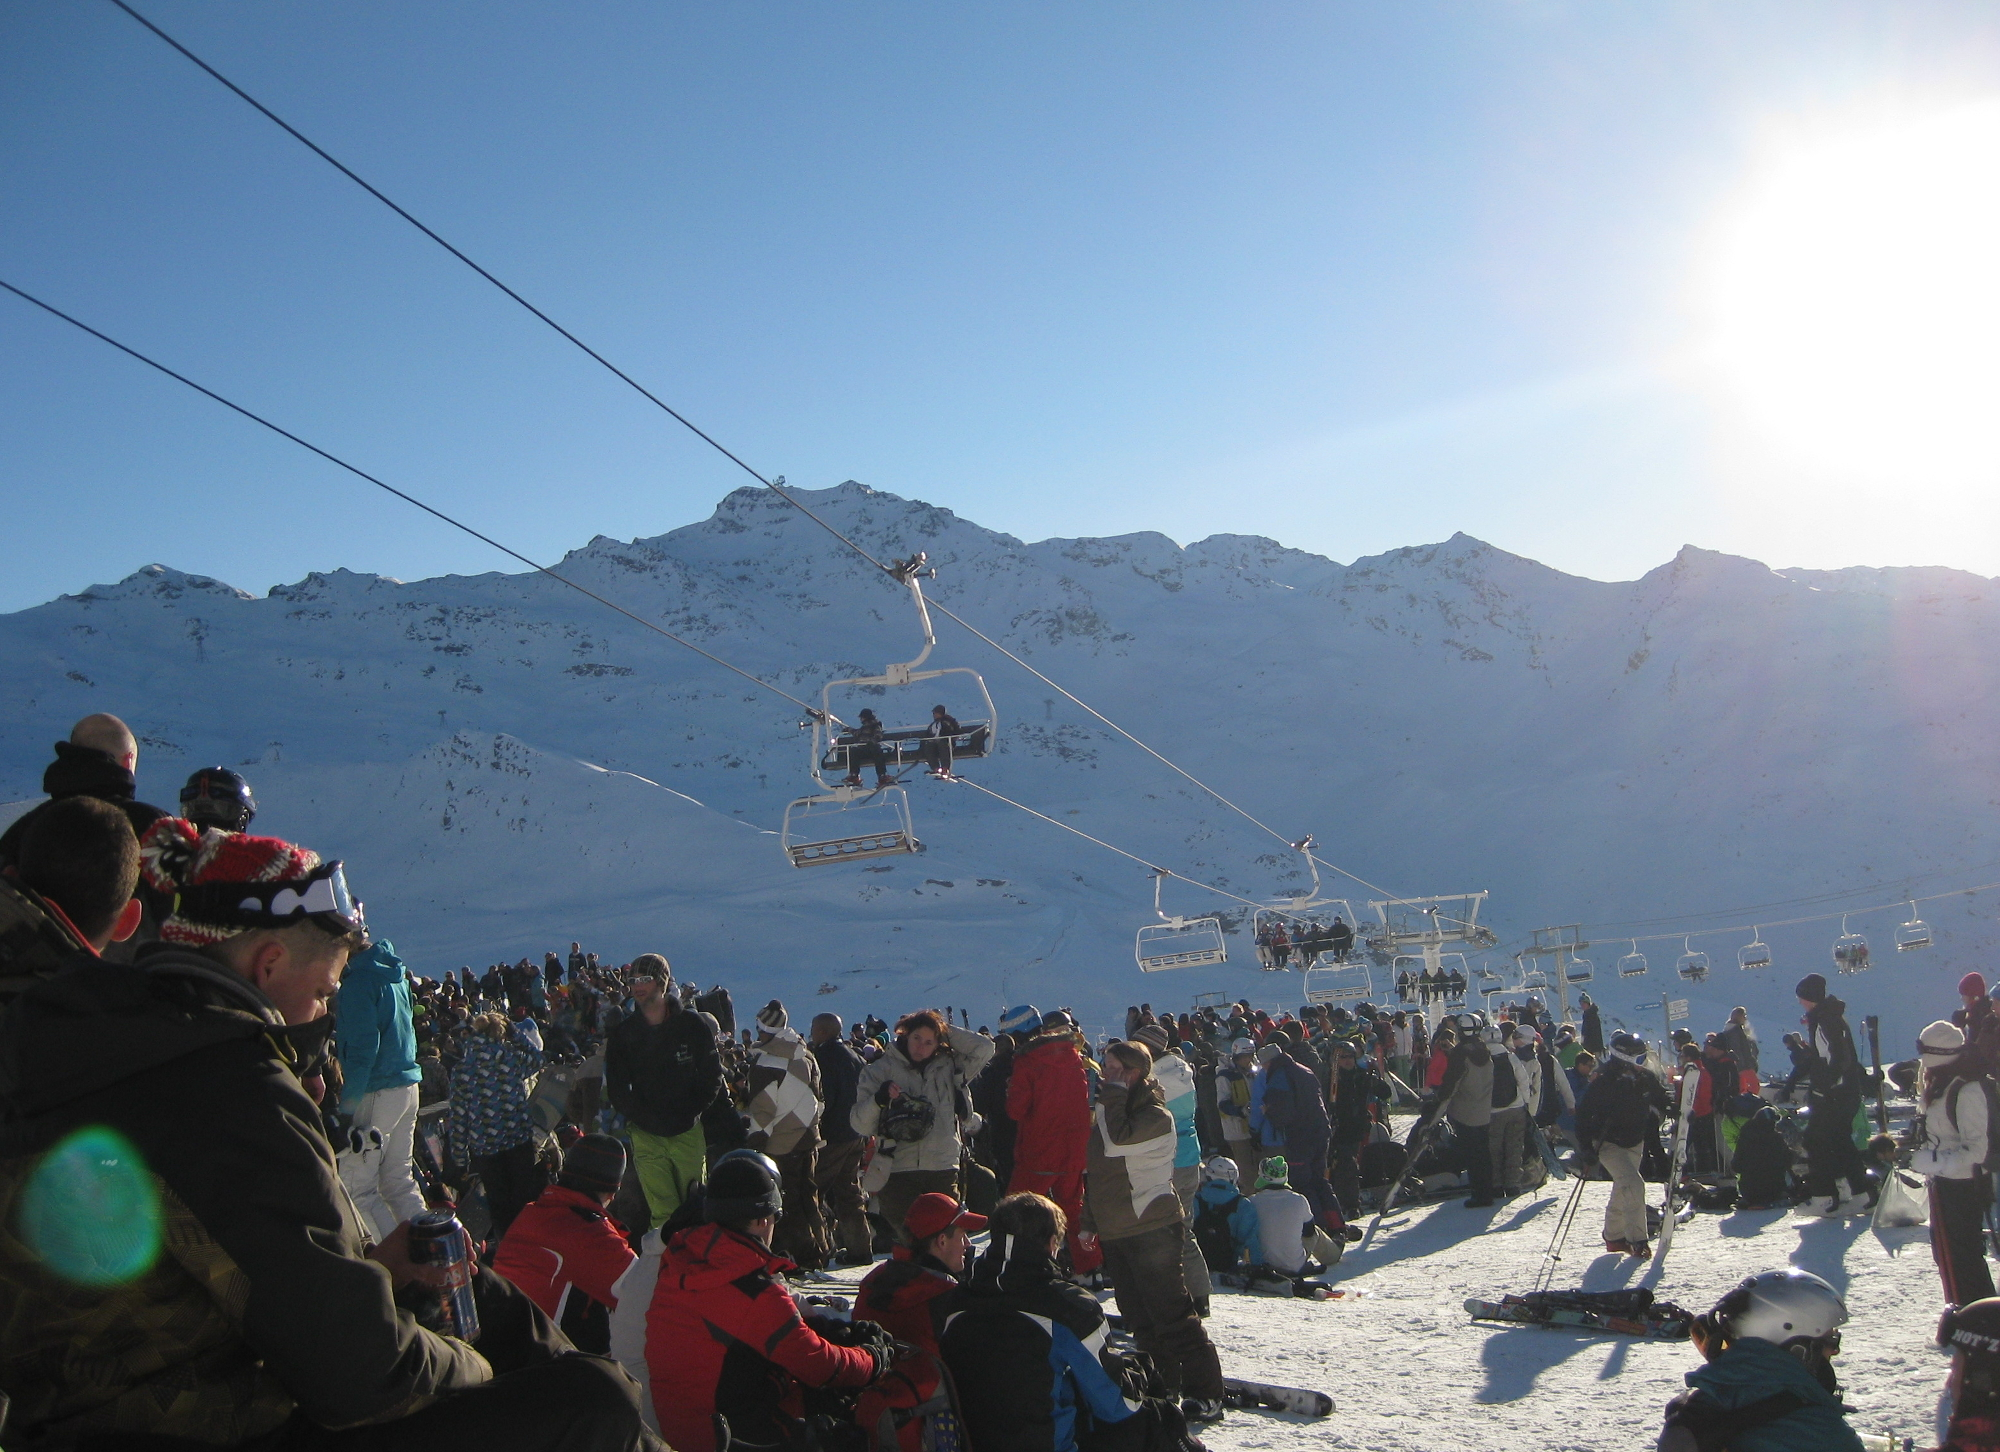 Apres ski at the Folie Douce in Val Thorens France